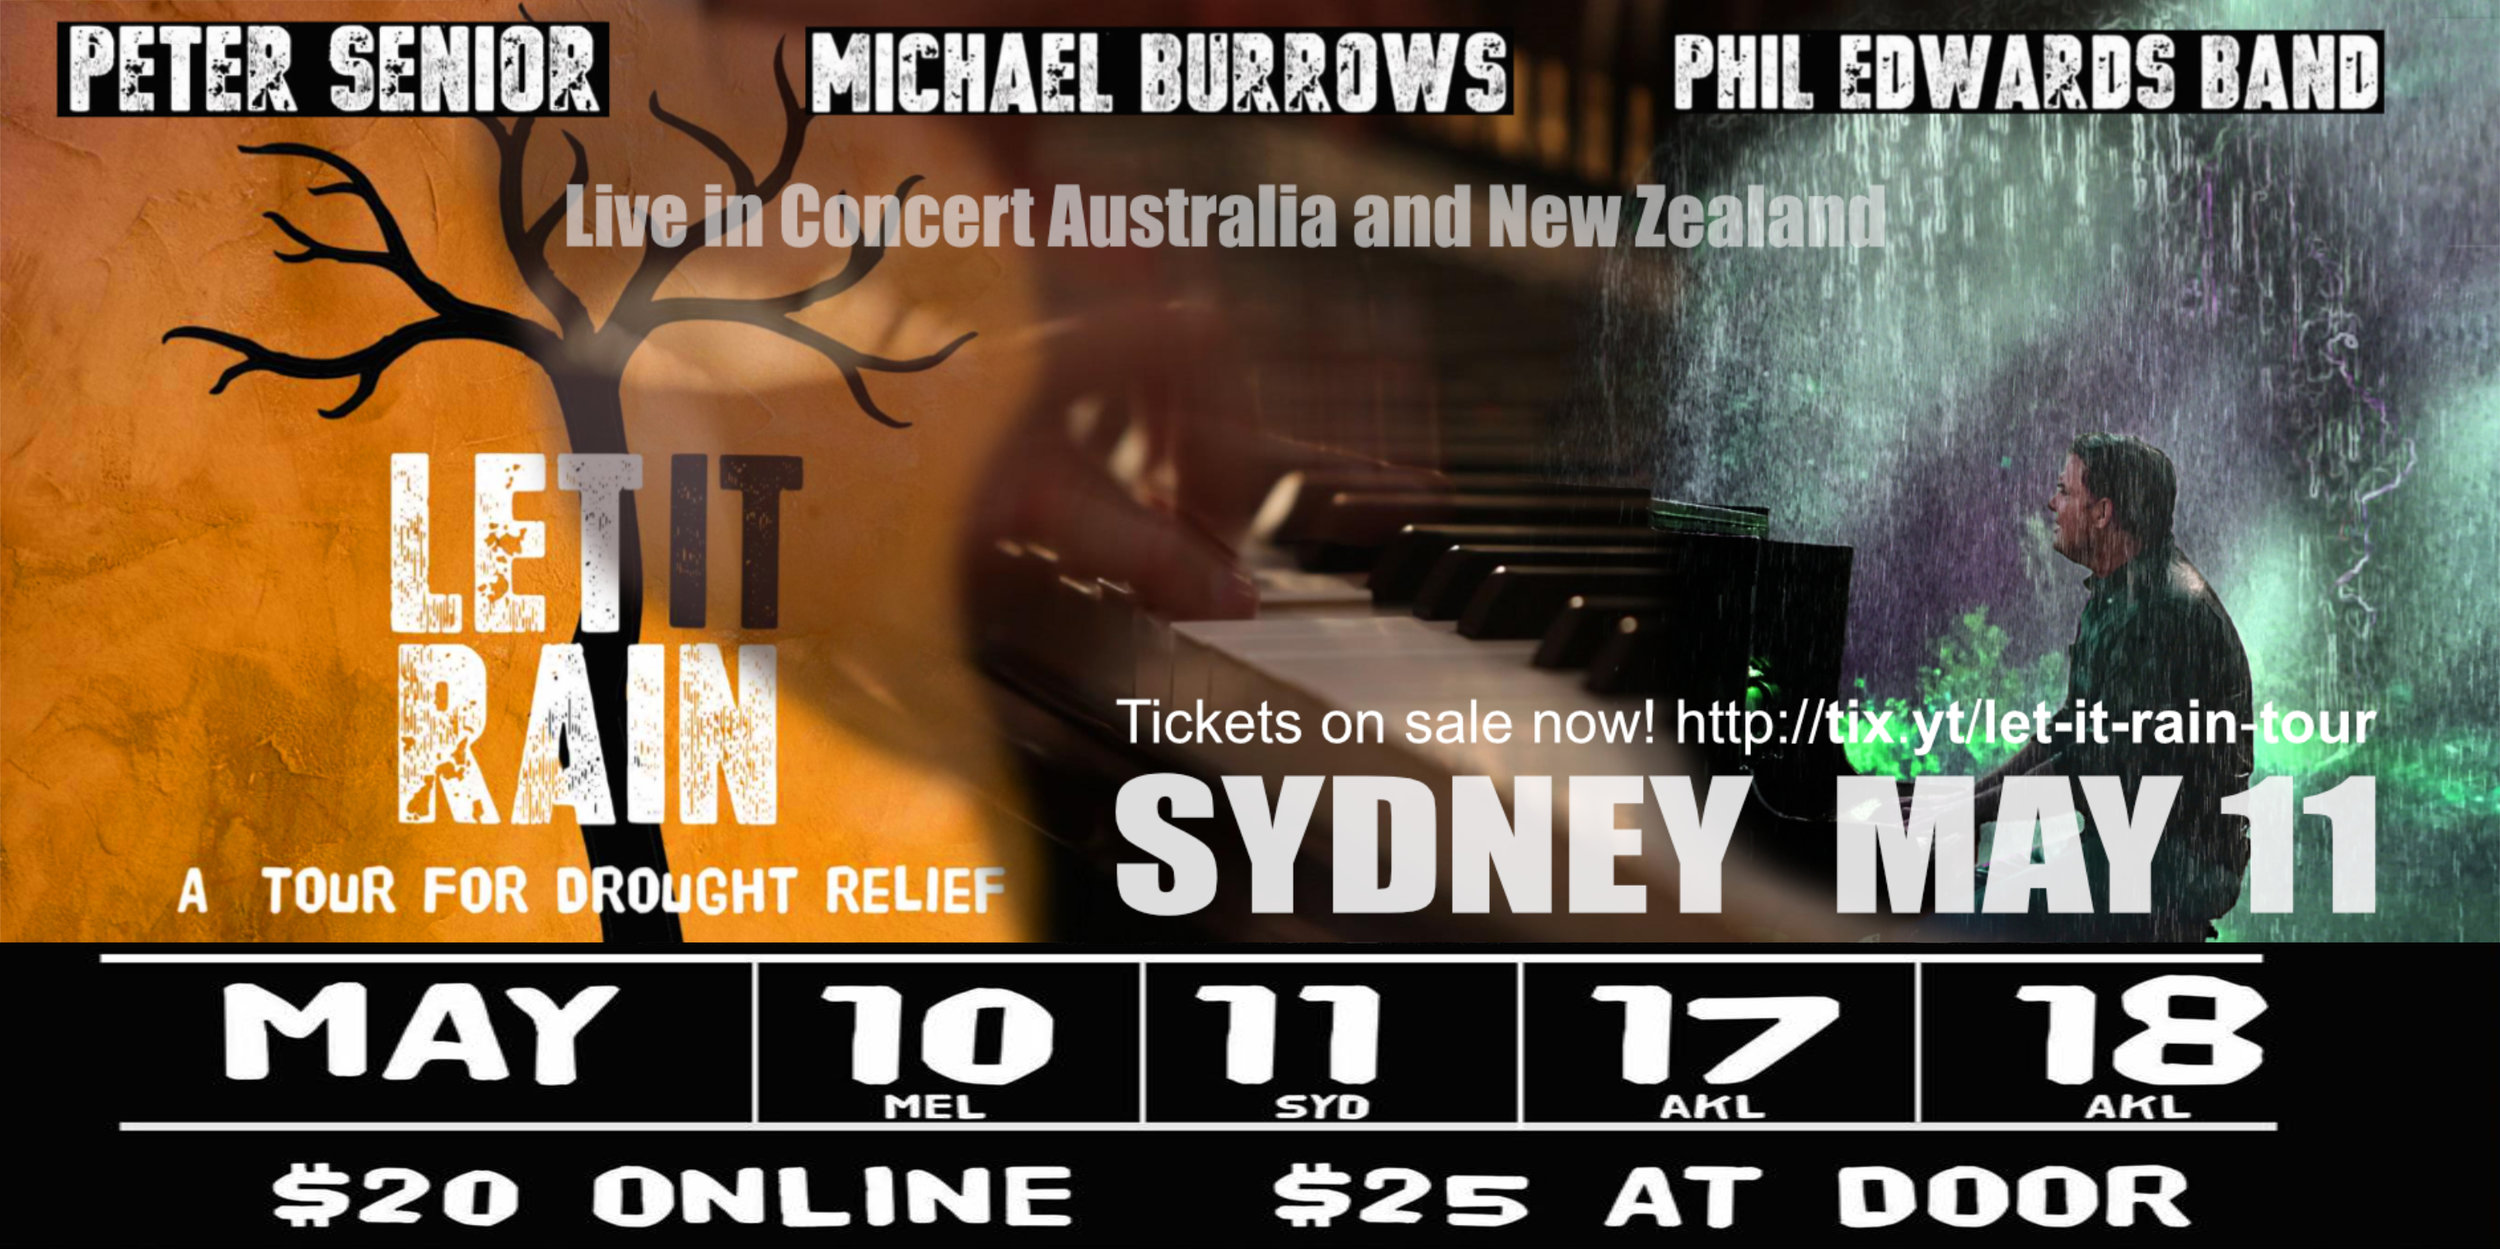 CLICK IMAGE FOR SYDNEY TICKETS